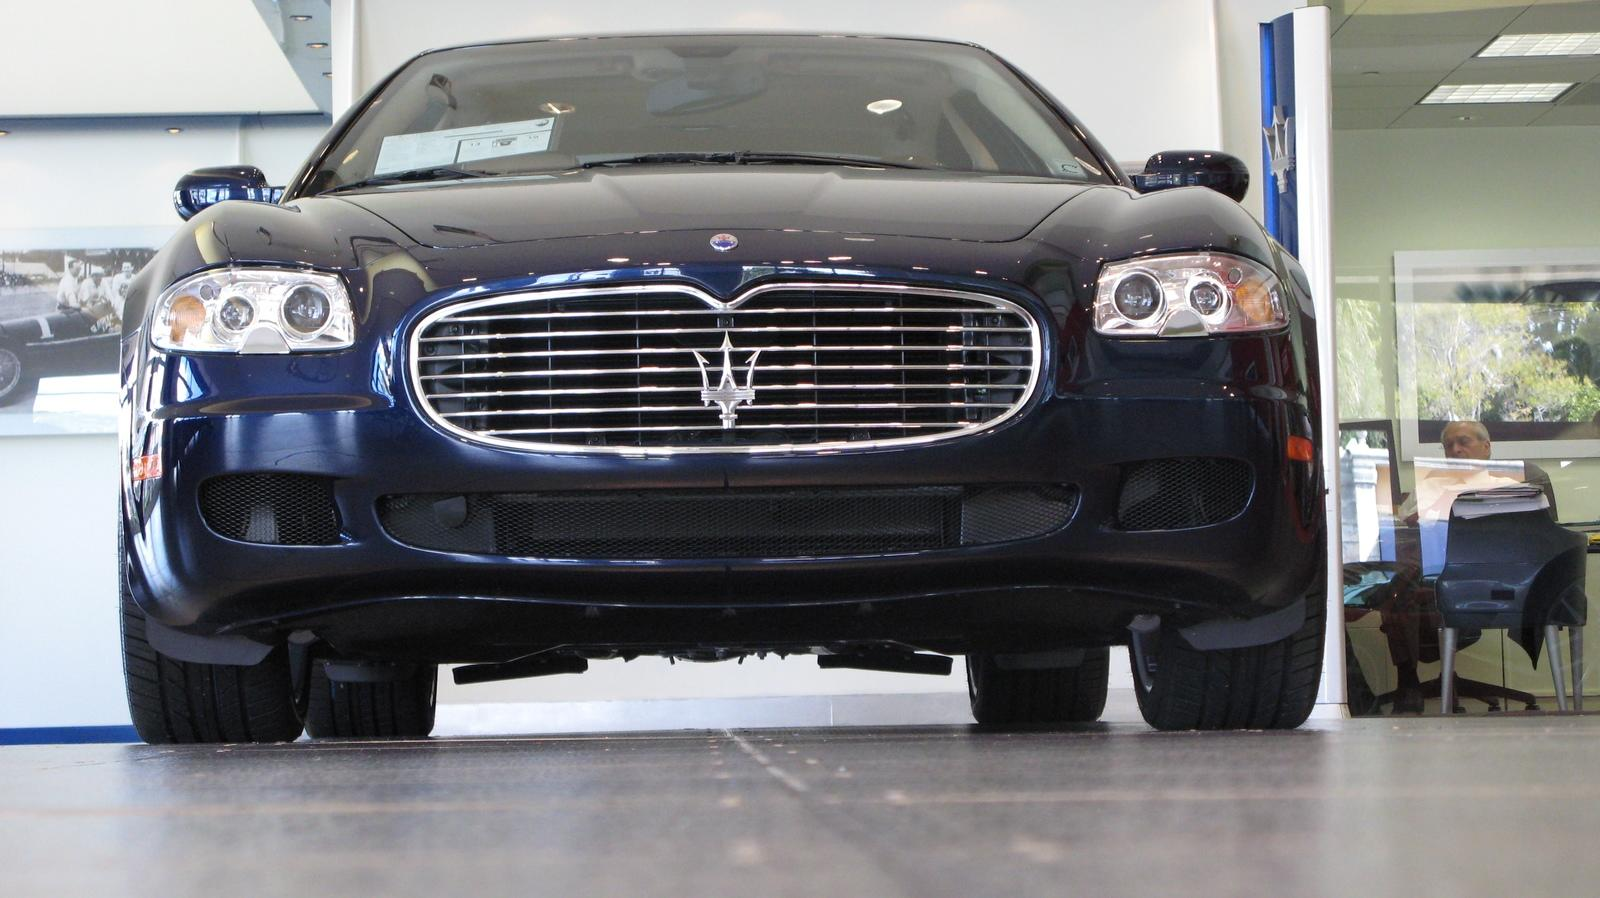 2007 maserati quattroporte automatic picture 153635. Black Bedroom Furniture Sets. Home Design Ideas